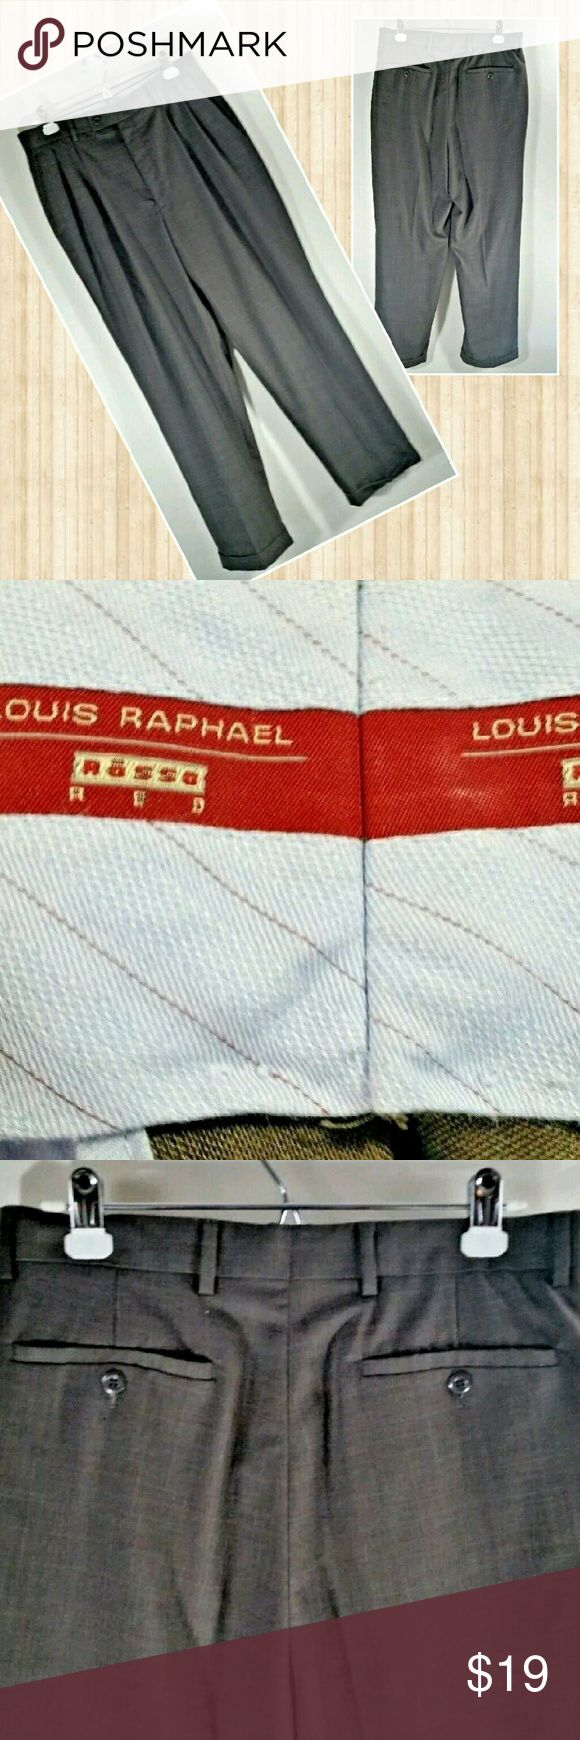 Louis Raphael Rosso Red Brow Plaid Slacks Louis Raphael Rosso Red Men's Pleated Front Dress Pants Slacks Trouser  Brown Glen Plaid  Size 32 x 30 - Measures at 32 x 29.5 Lying Flat  Gently Used - No Flaws Found Upon Inspection and Photographing - See Photos for Description  86% Polyester 14% Viscose  Thank you for looking! Louis Raphael Rosso Red Pants Dress